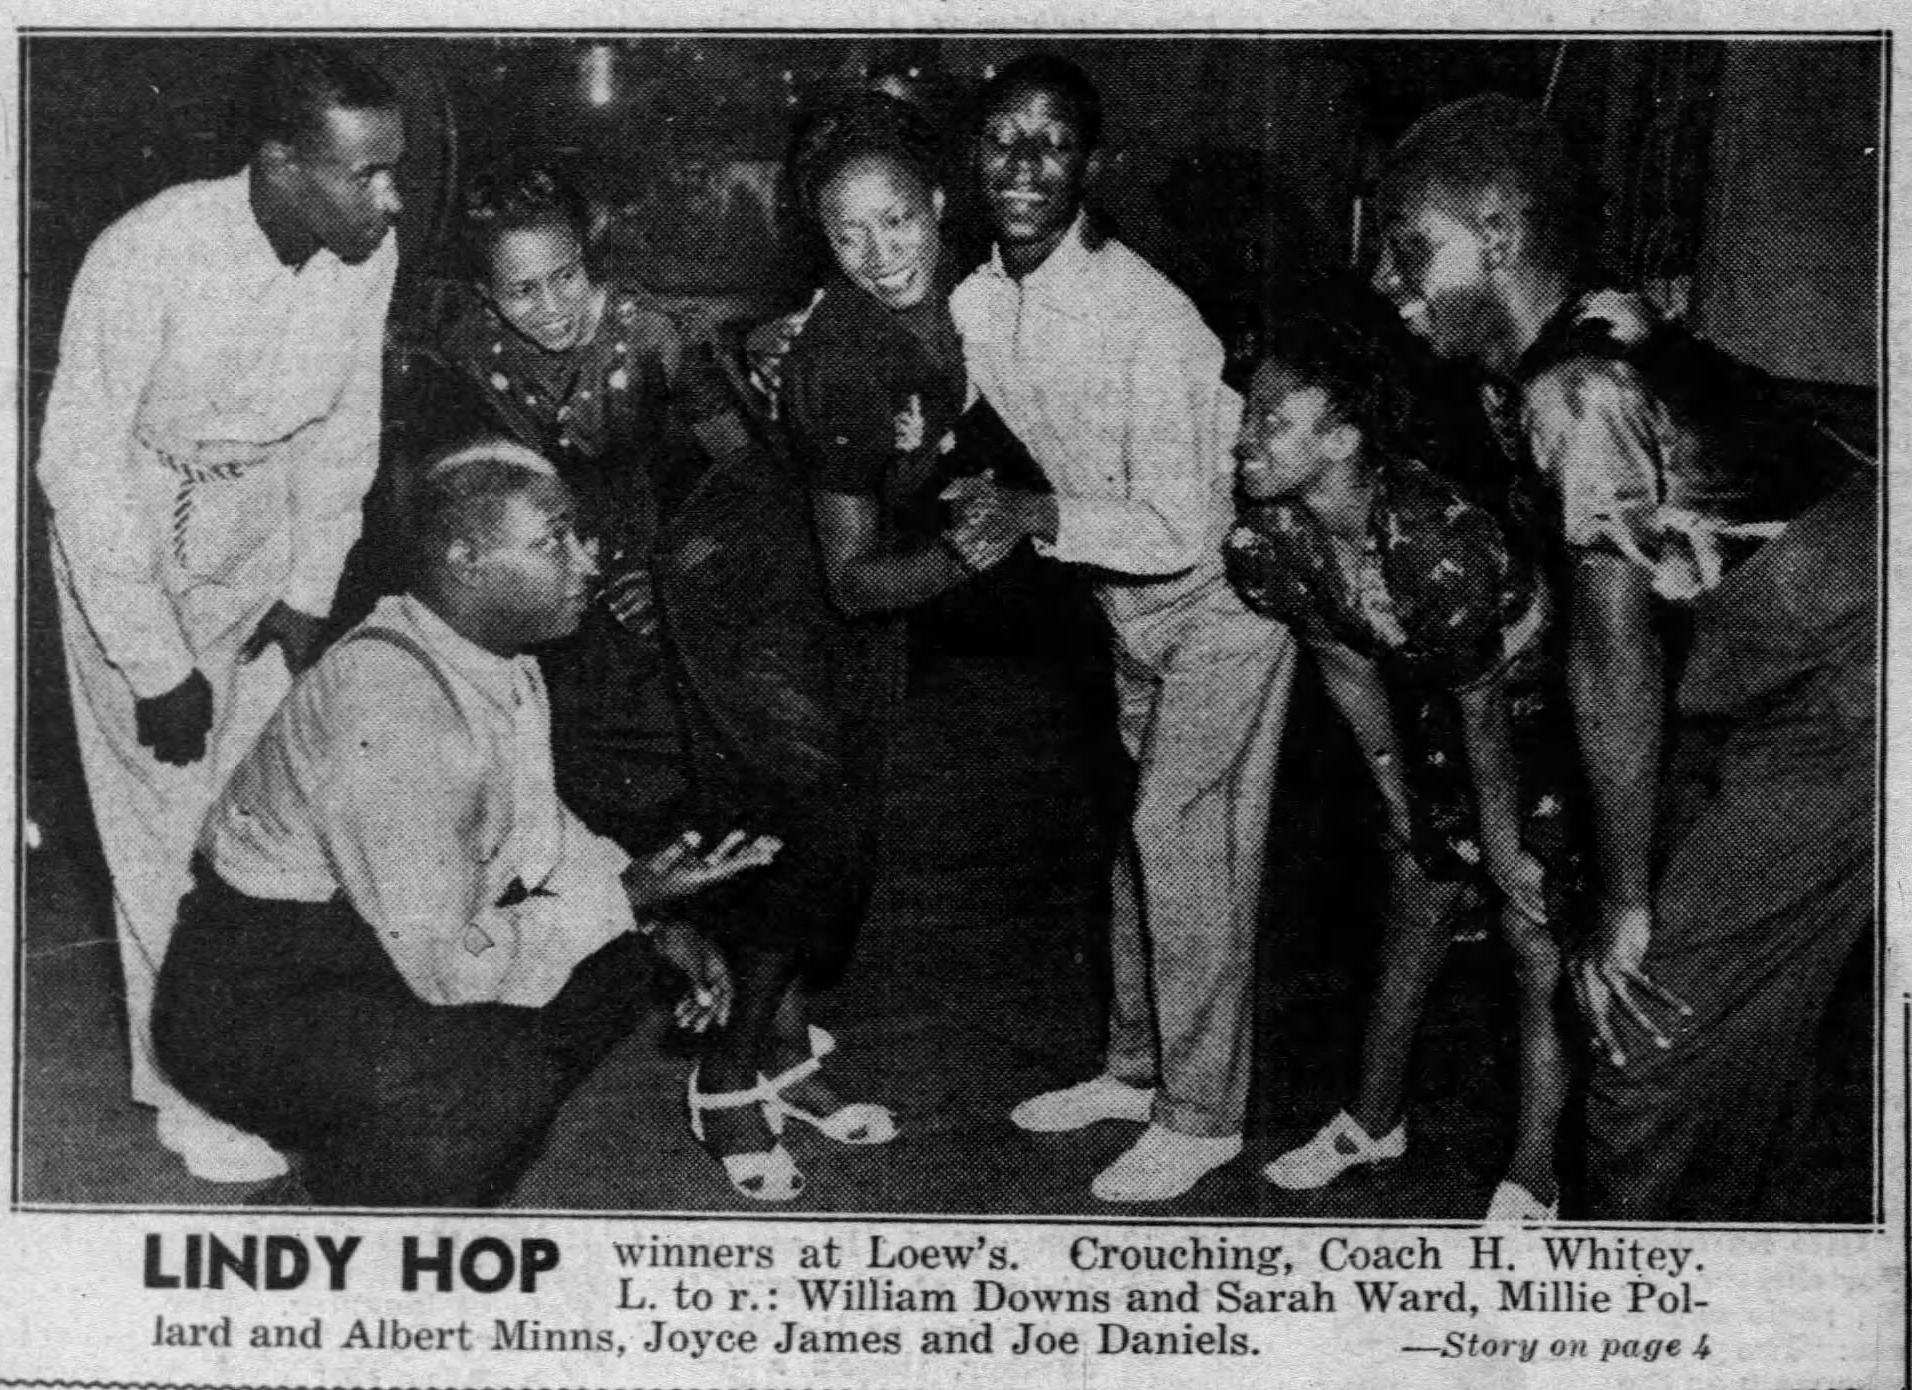 1938 ALL THE LINDY HOP WINNERS pictures Daily_News_Fri__Sep_2__1938_